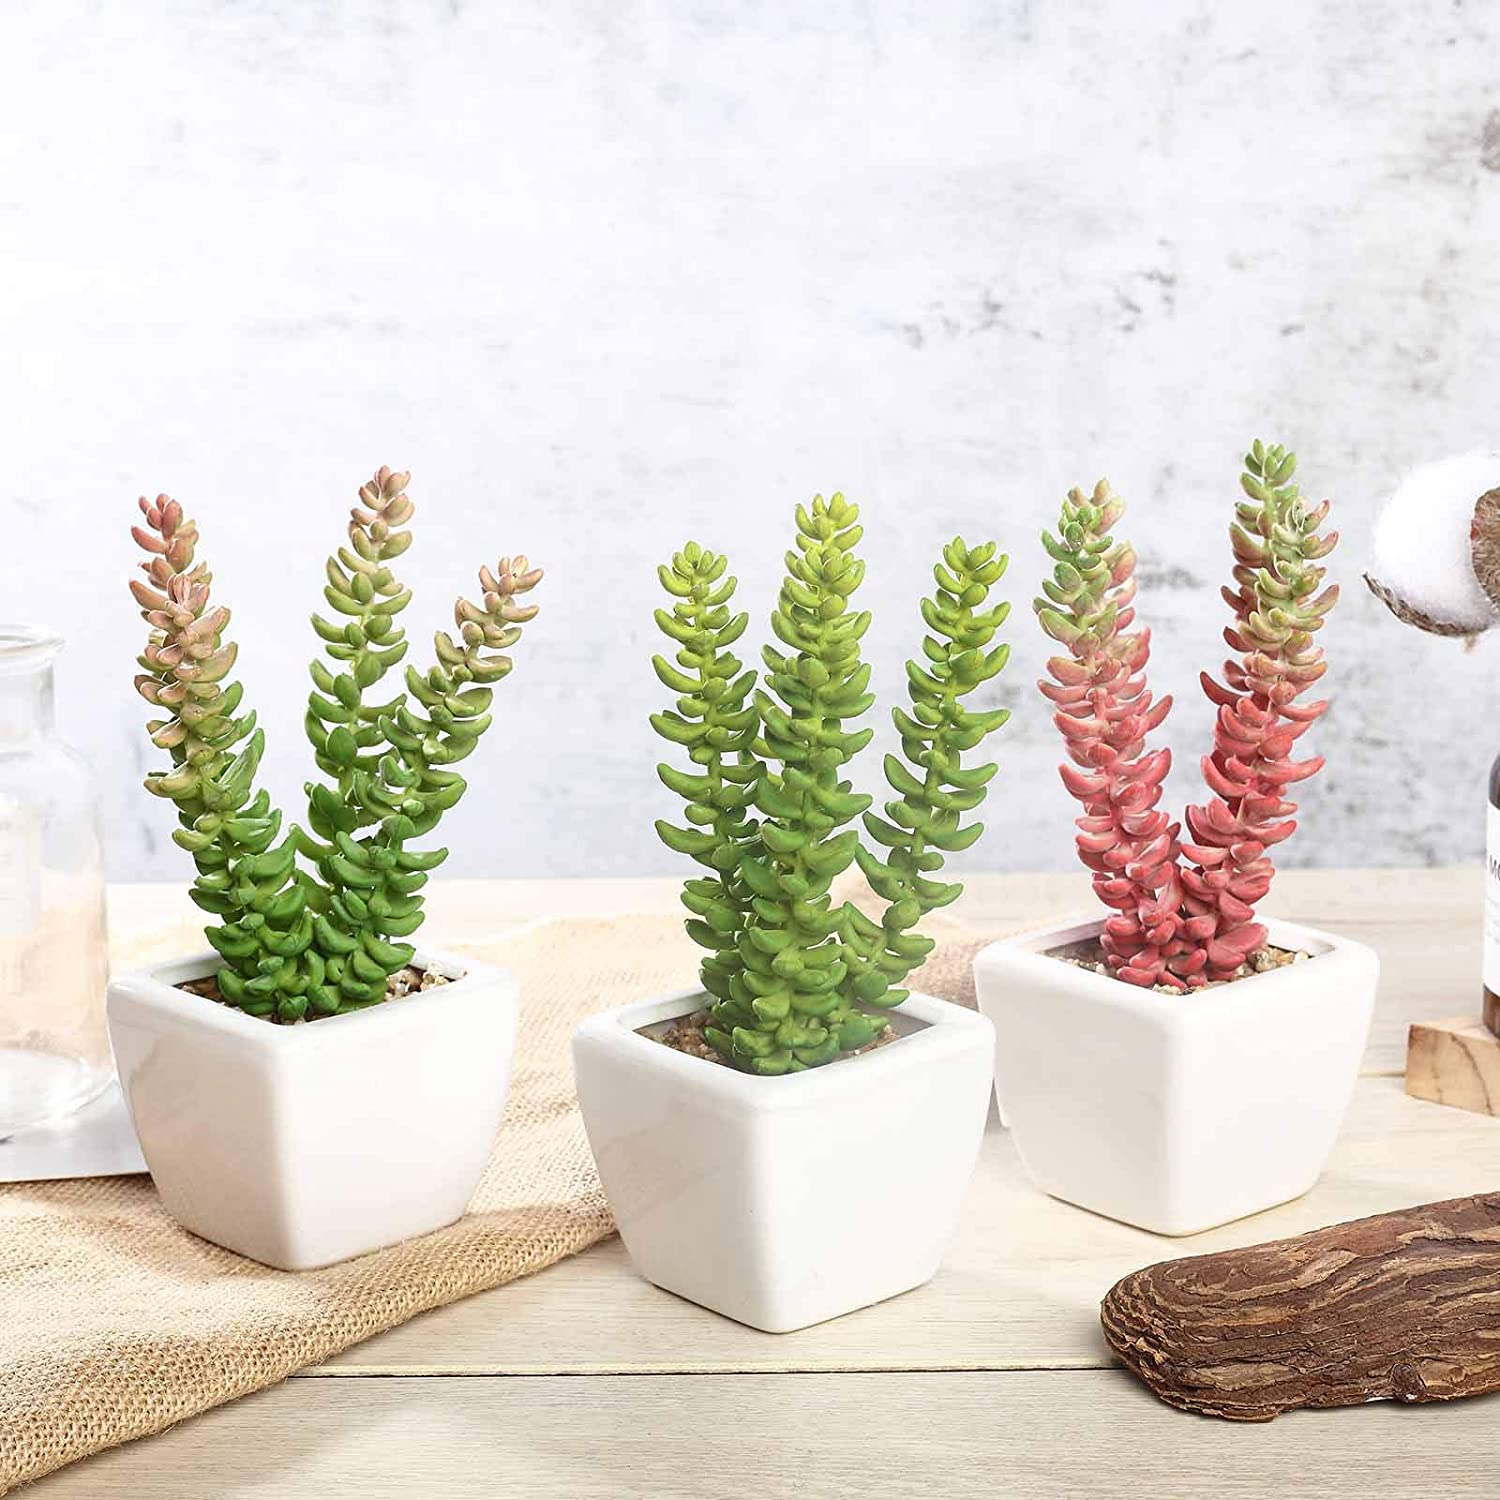 Set of 2 Richly Colored Green and Pink Artificial Sedum Succulent Stems